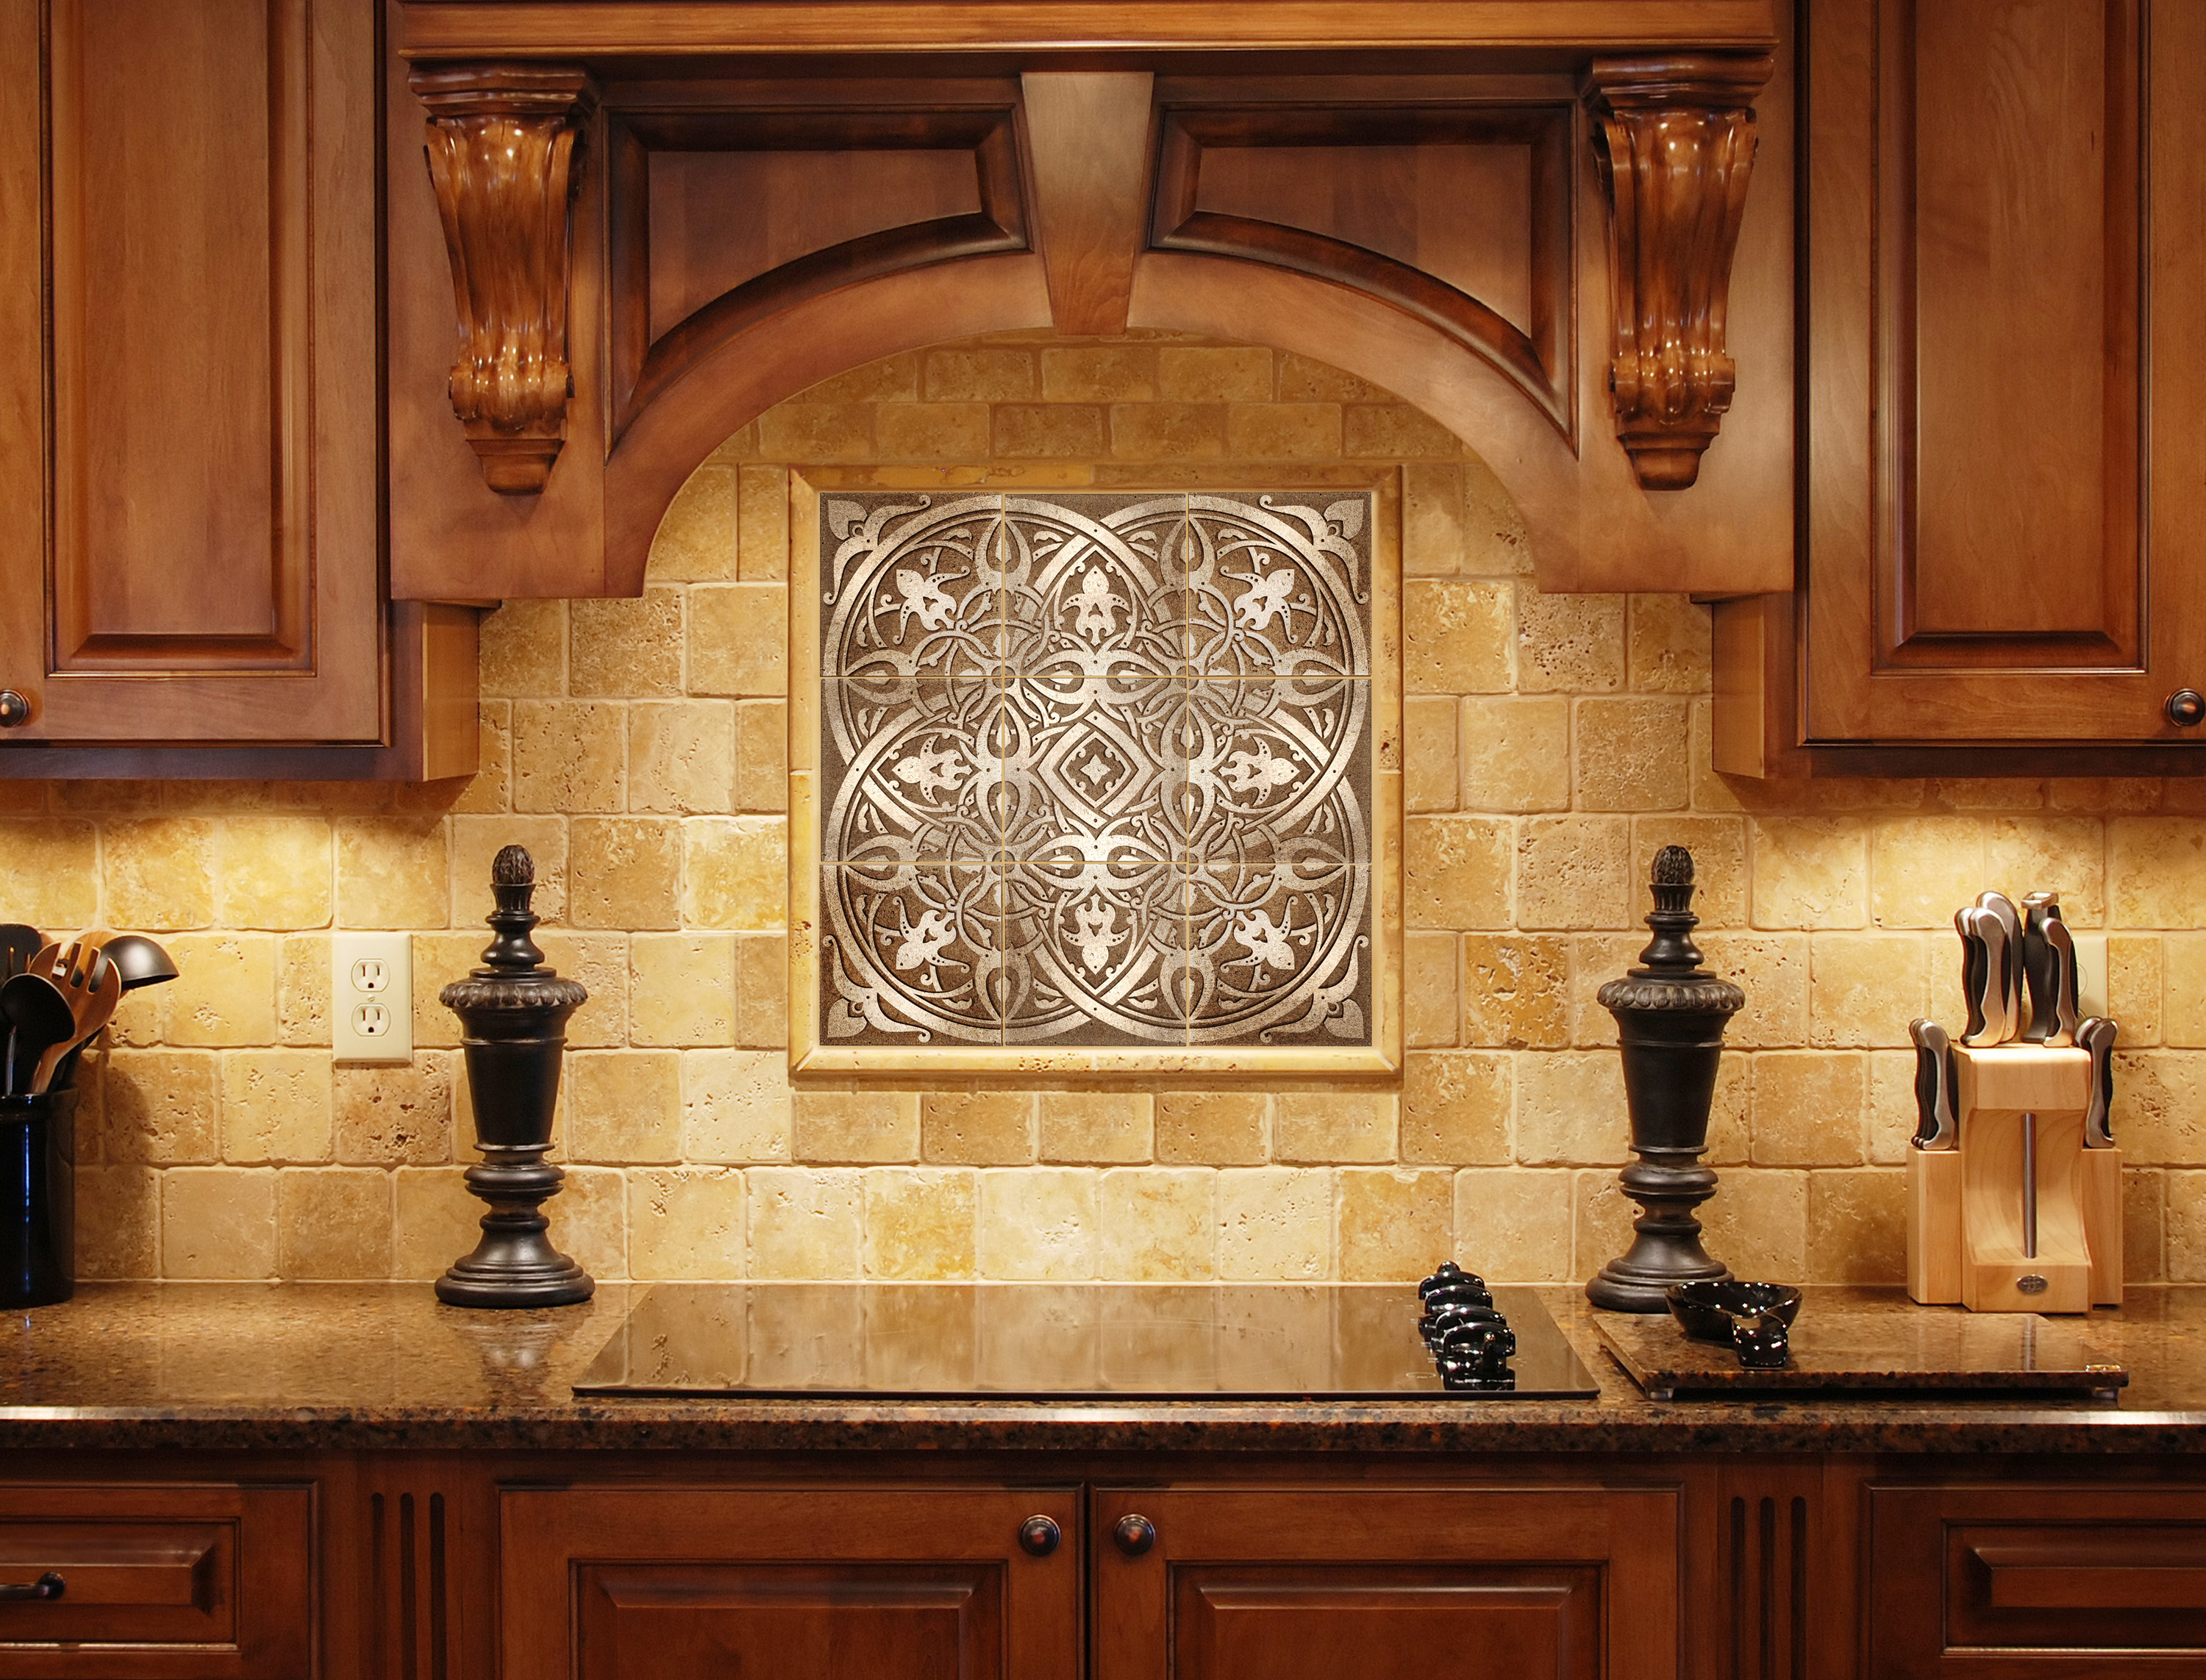 Kitchen Backsplash Plaques by BELK Tile